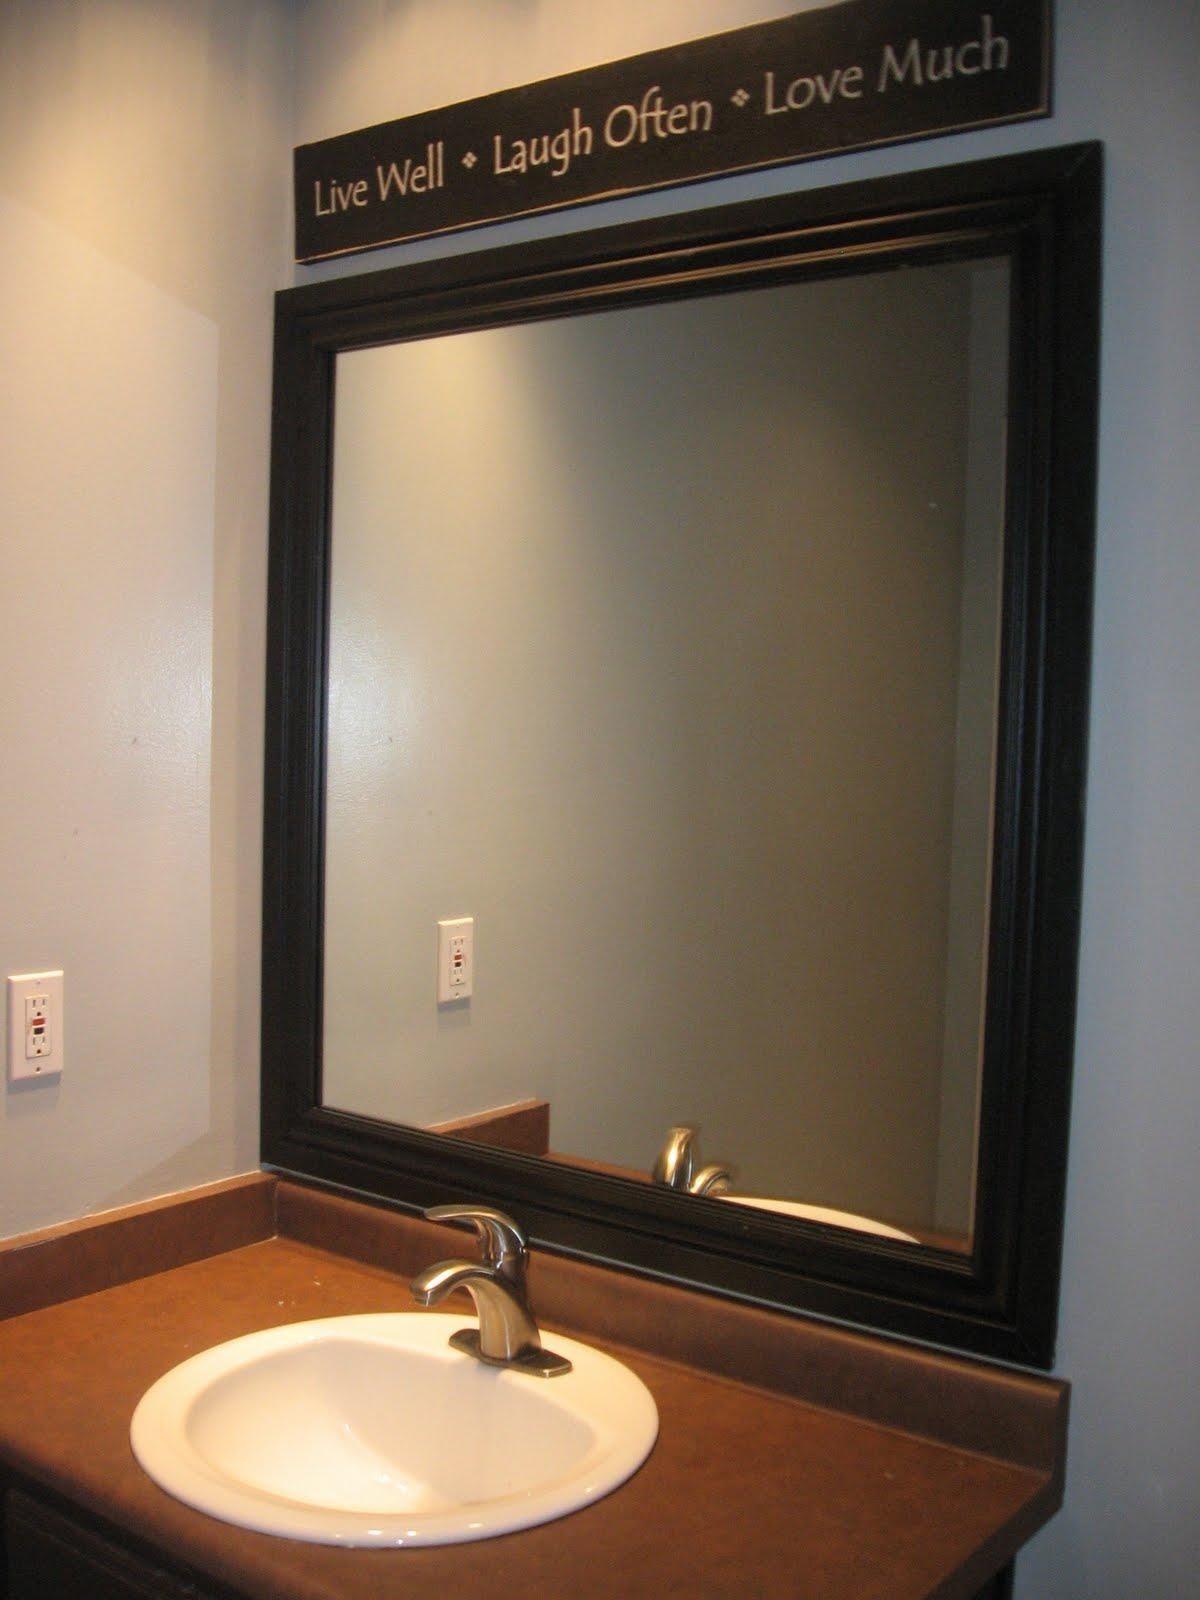 Stylish Framed Bathroom Mirrors | Home Designjohn In Frames Mirrors (Image 19 of 20)